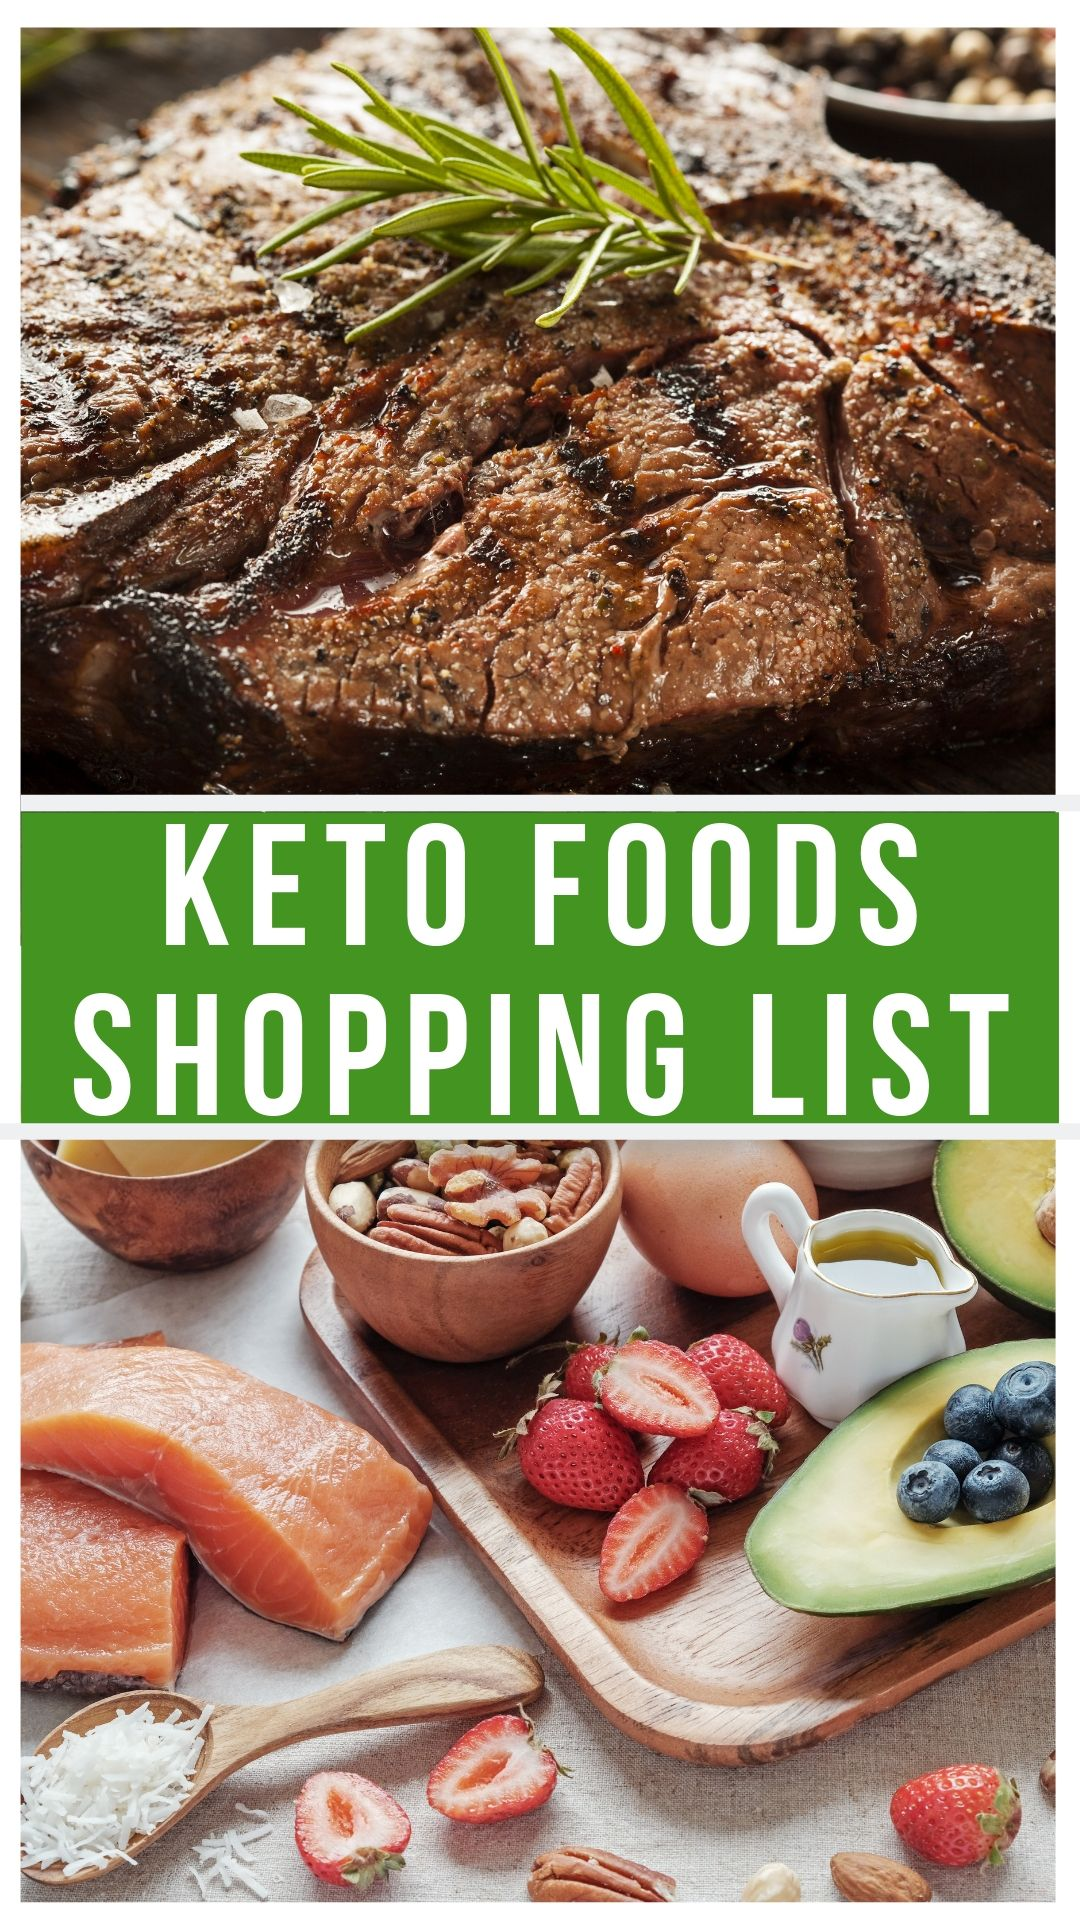 keto foods collage with steak in the top picture then a tray of low carb foods in the bottom.